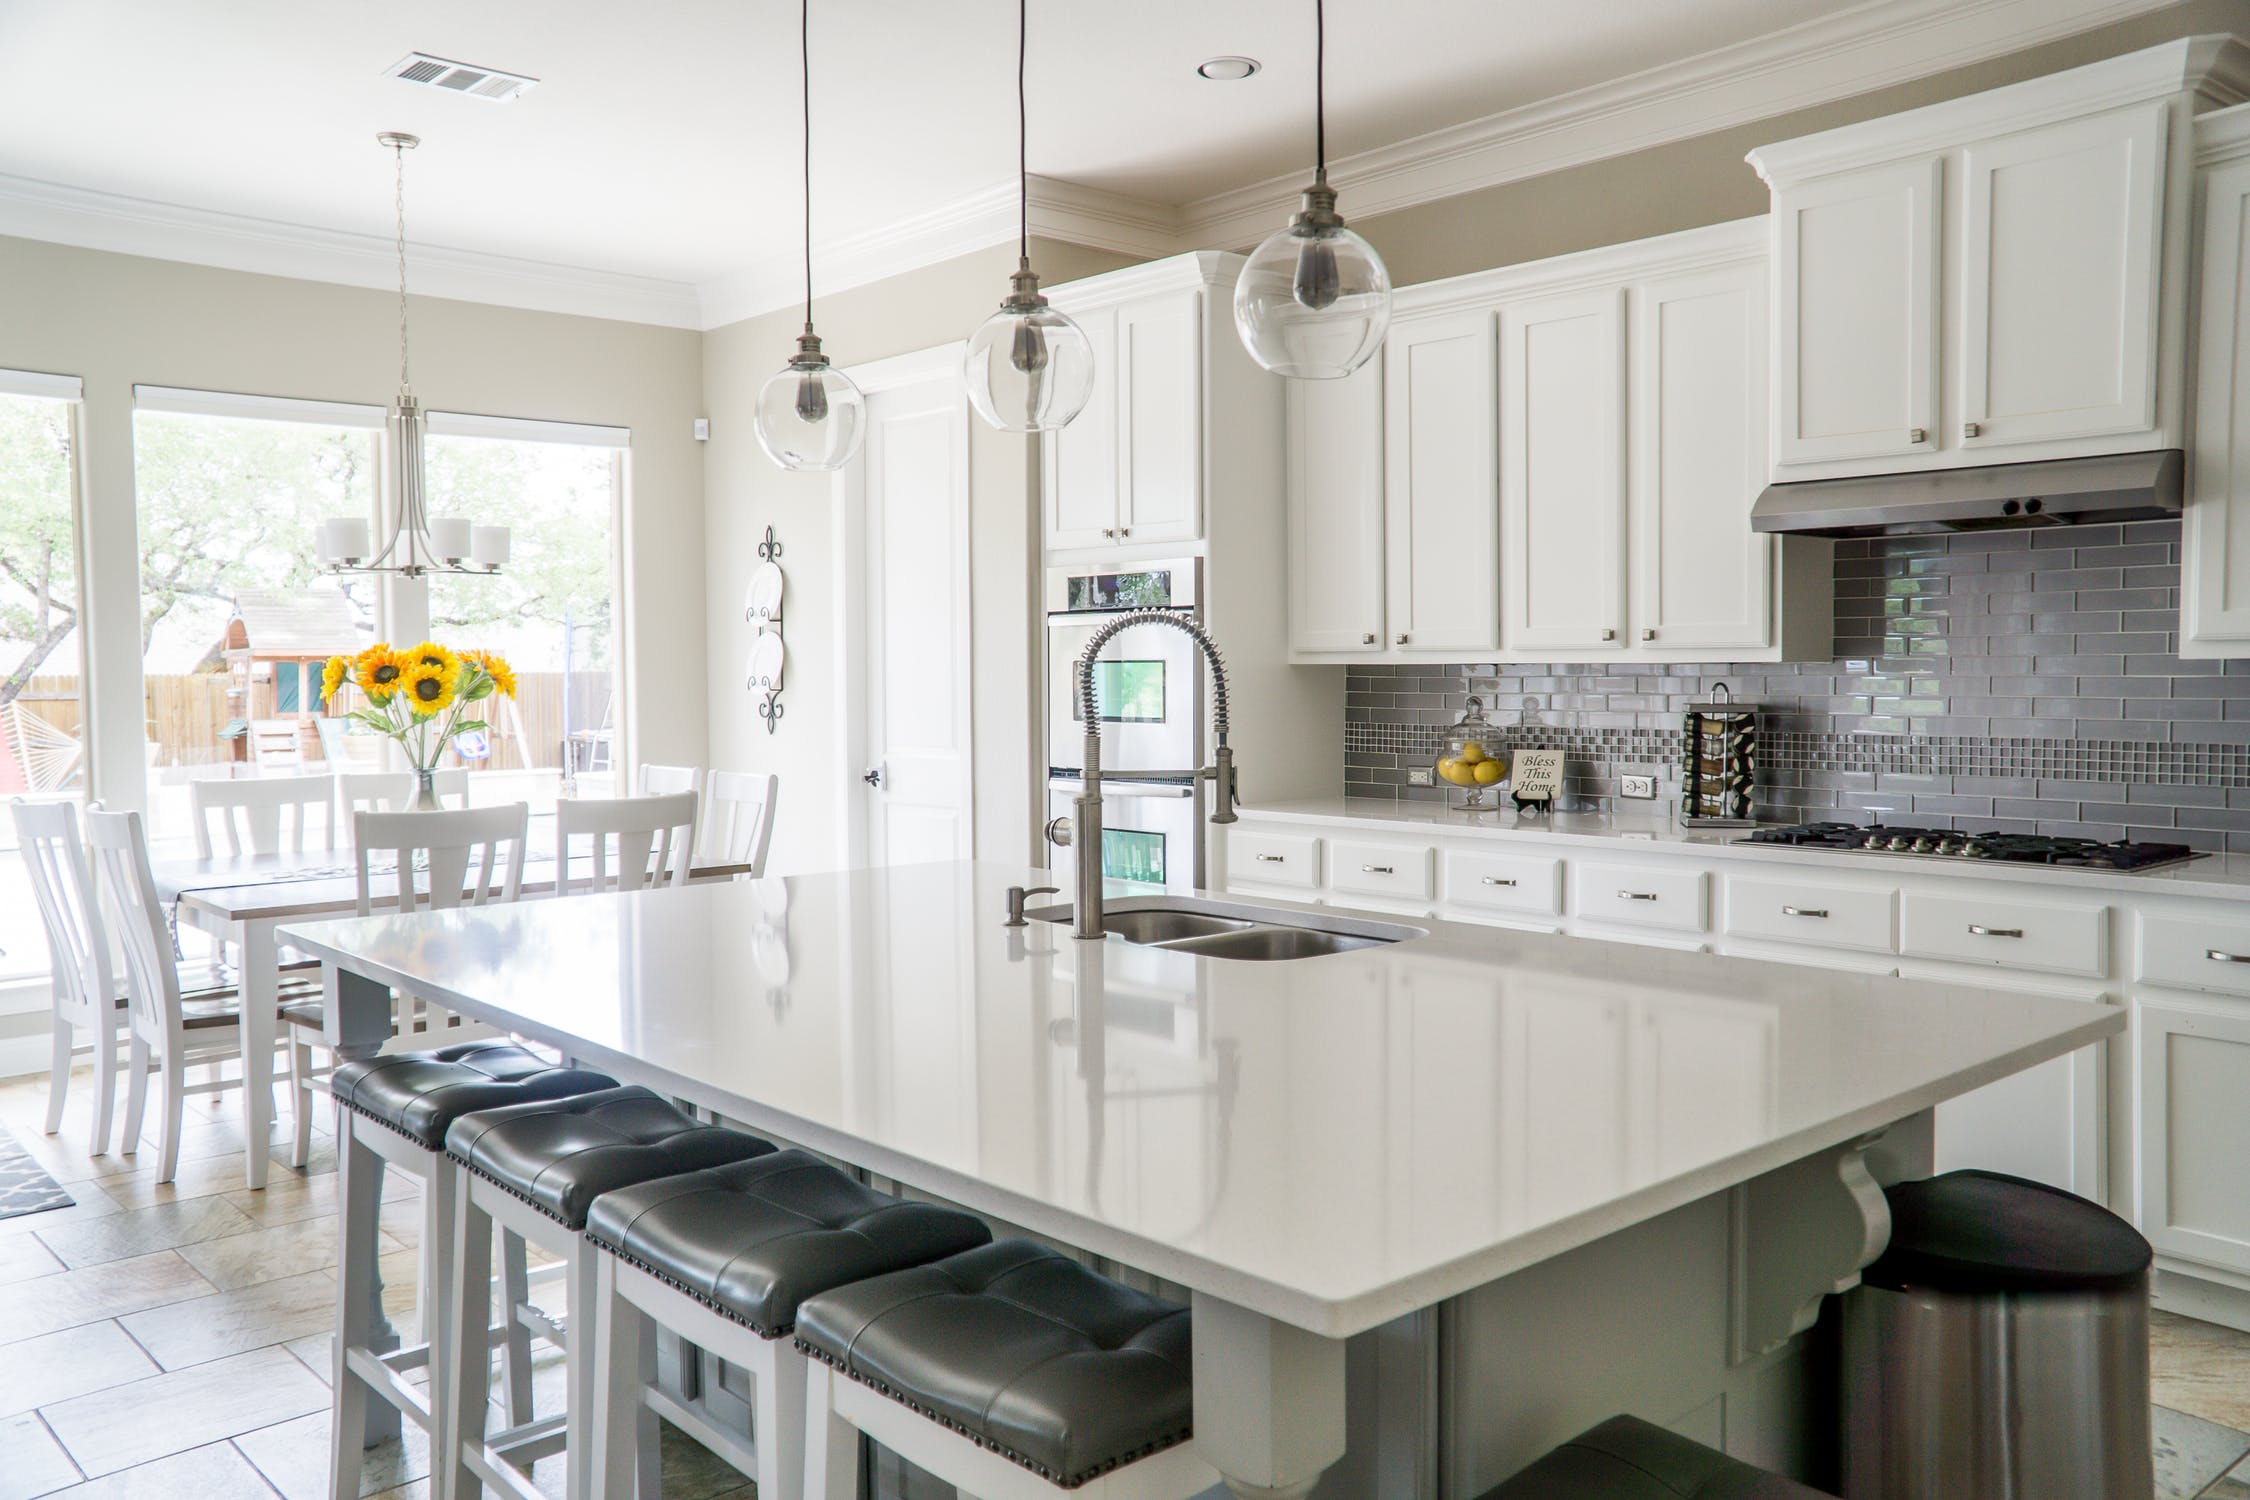 kitchen and bathroom remodeling | syracuse, ny